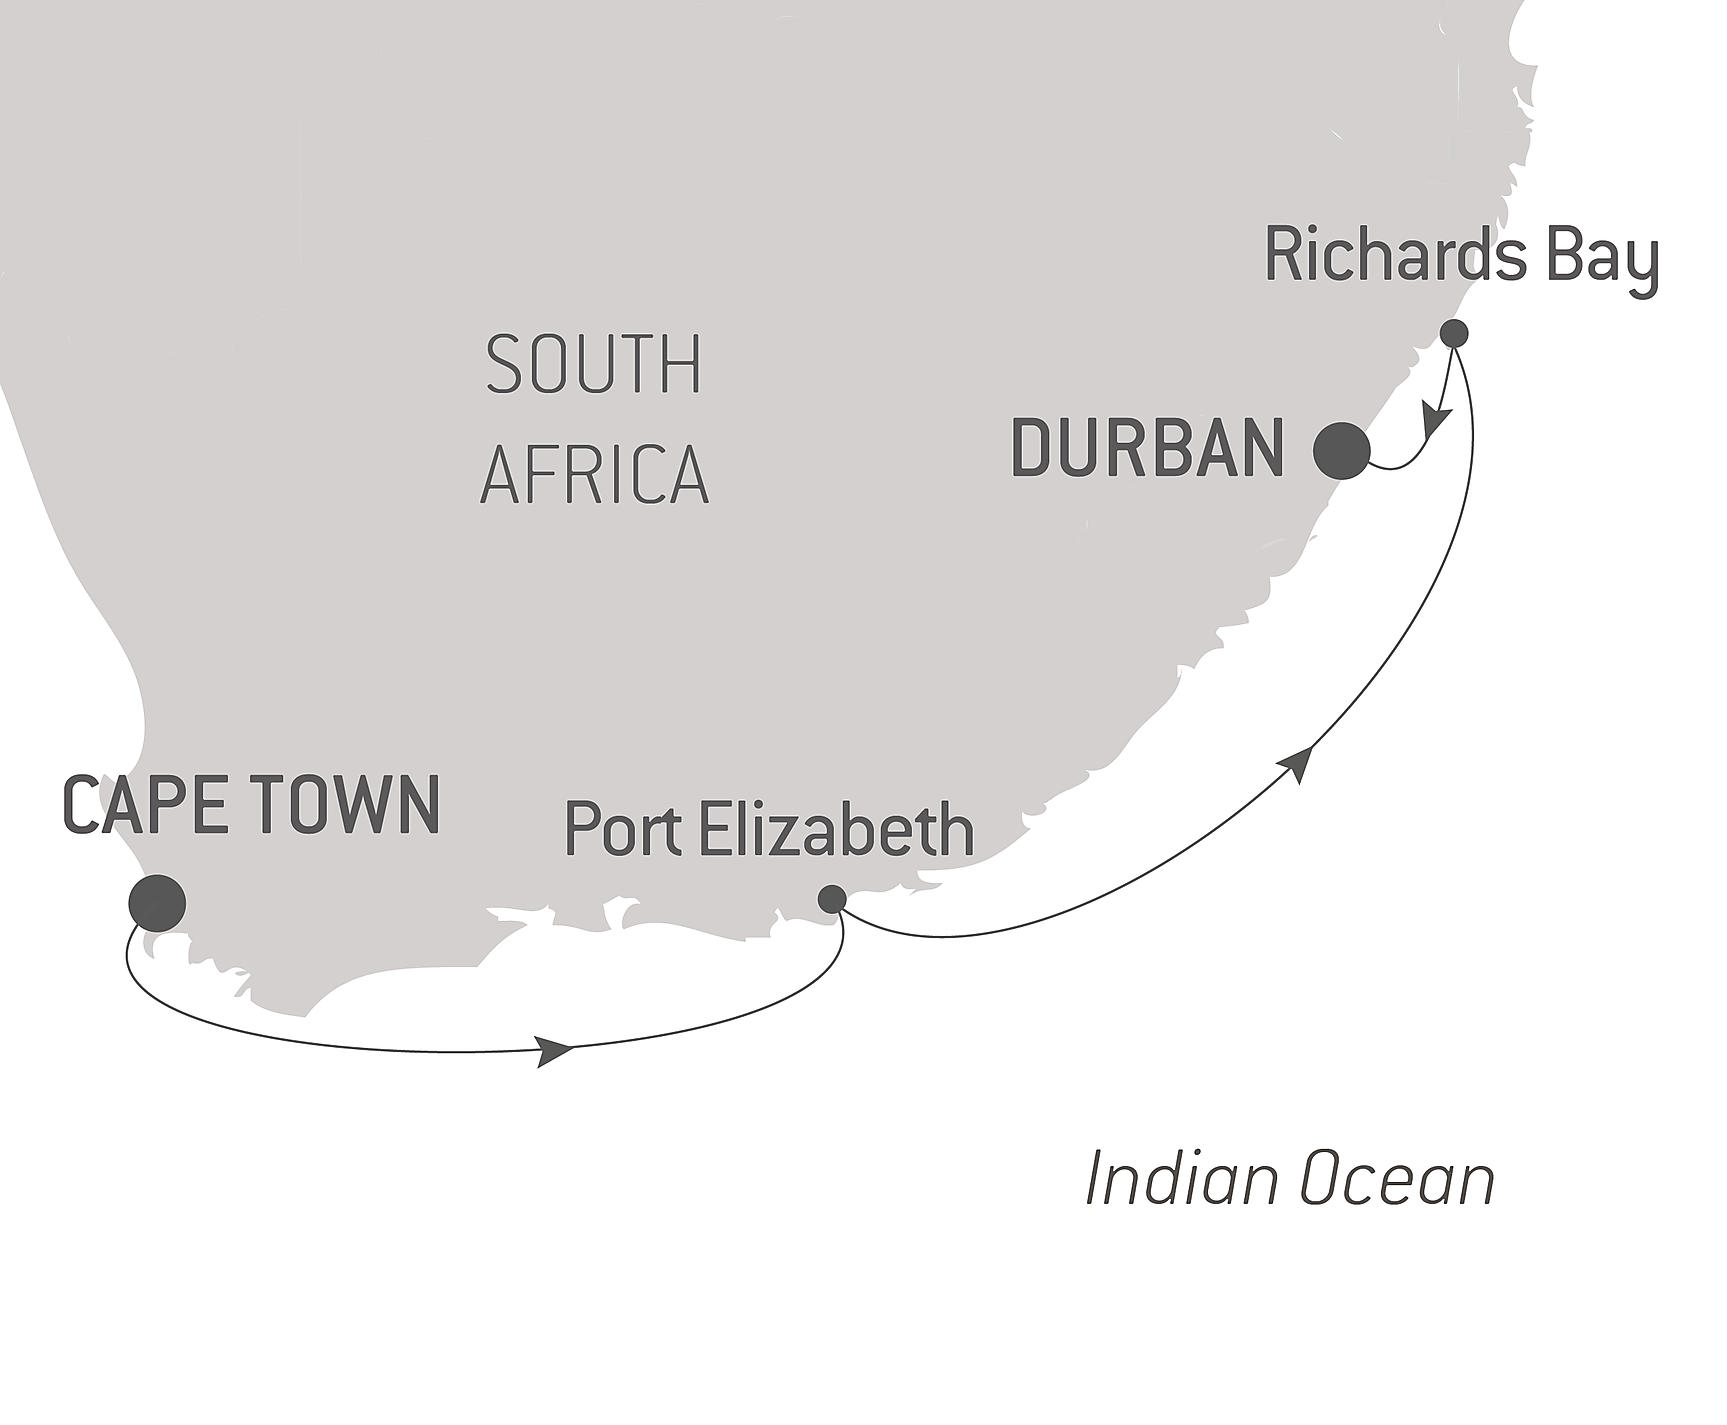 Tiny House Prix M2 along the south african coastline - musical cruise